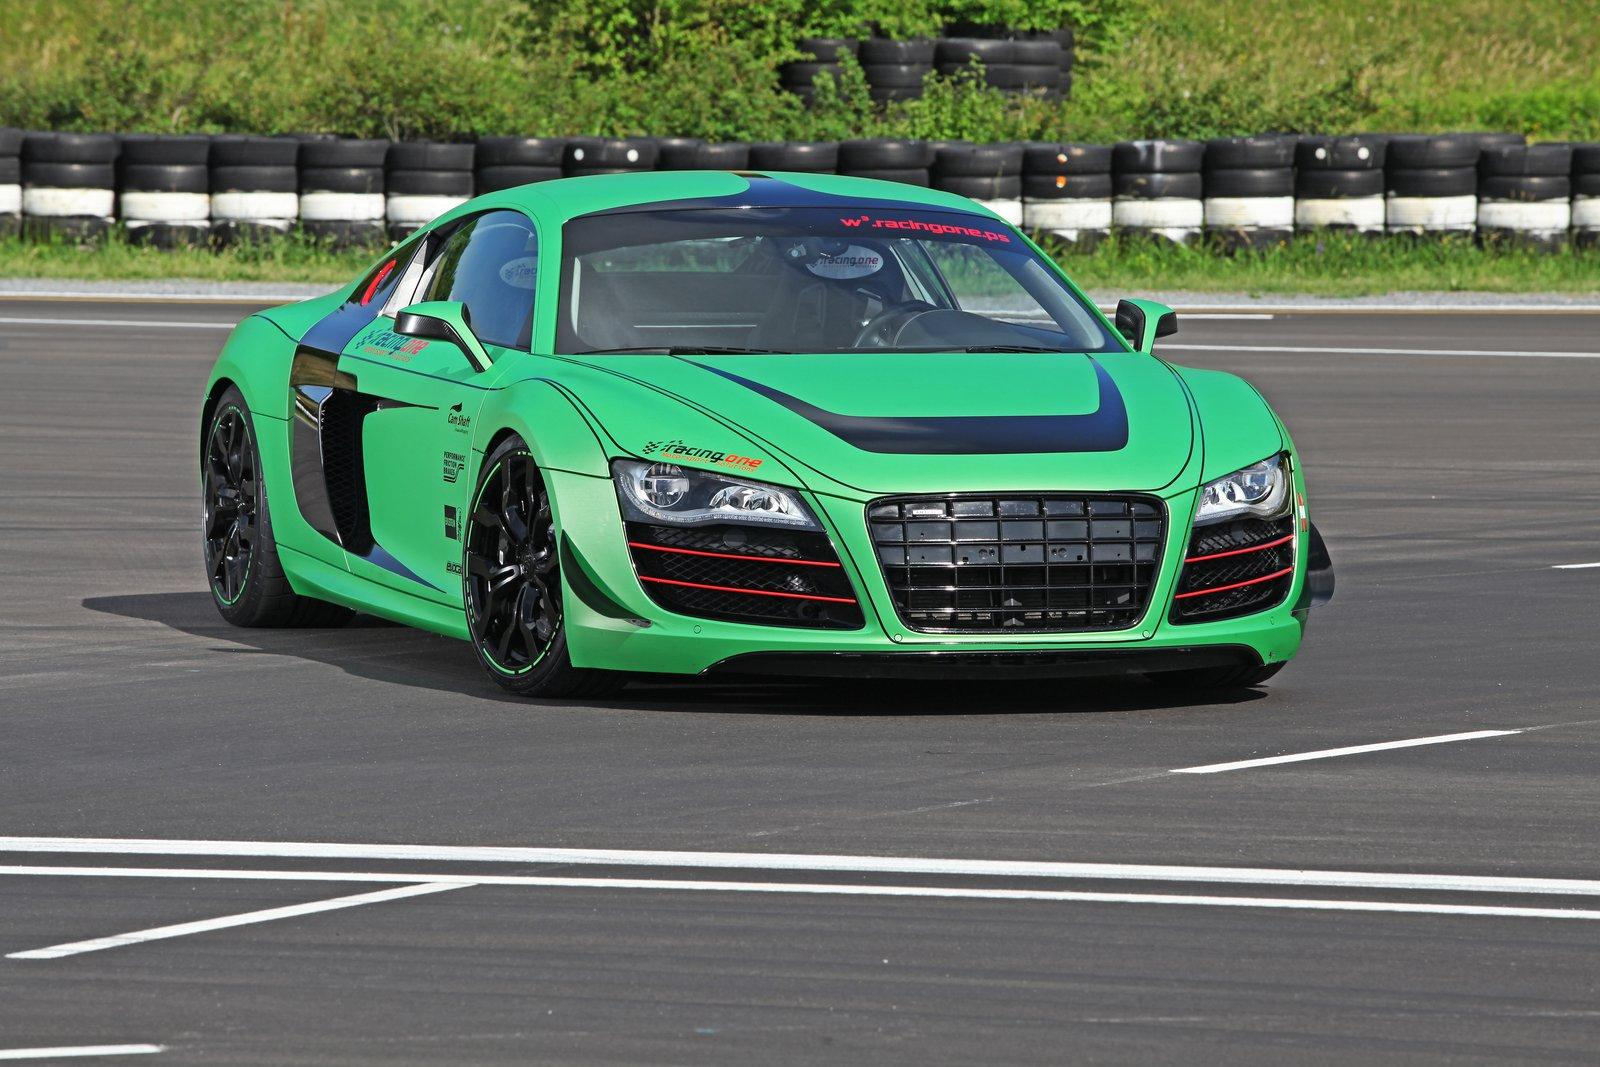 Racing One Audi R8 V10 5.2 Quattro - Latest Audi News